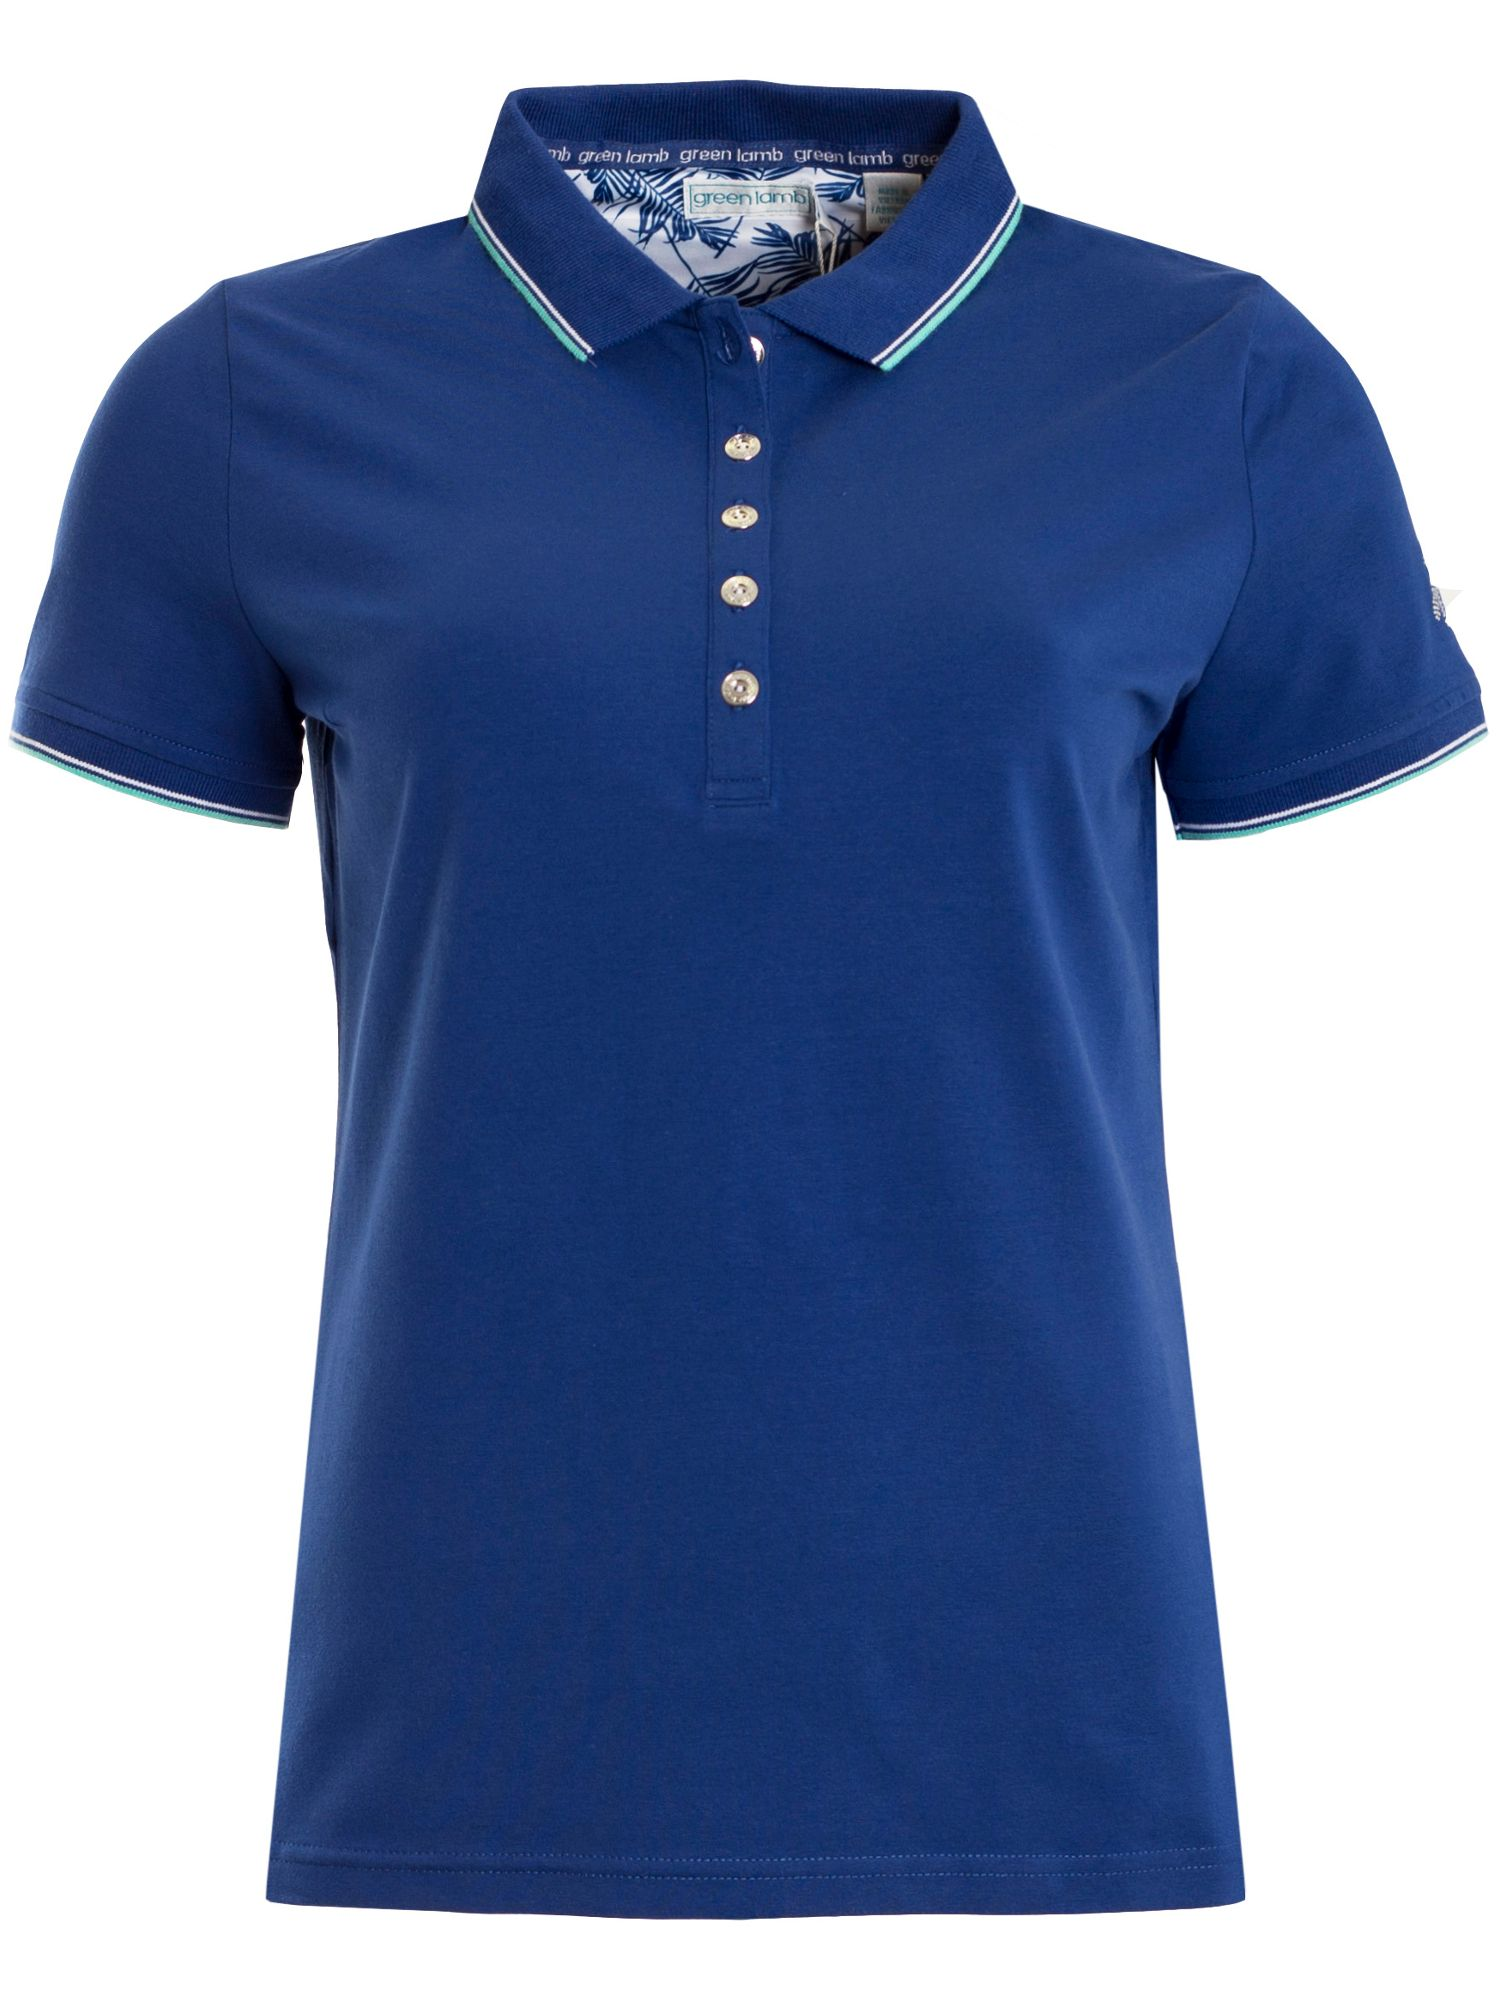 Green Lamb Patsy Jersey Club Polo, Airforce Blue